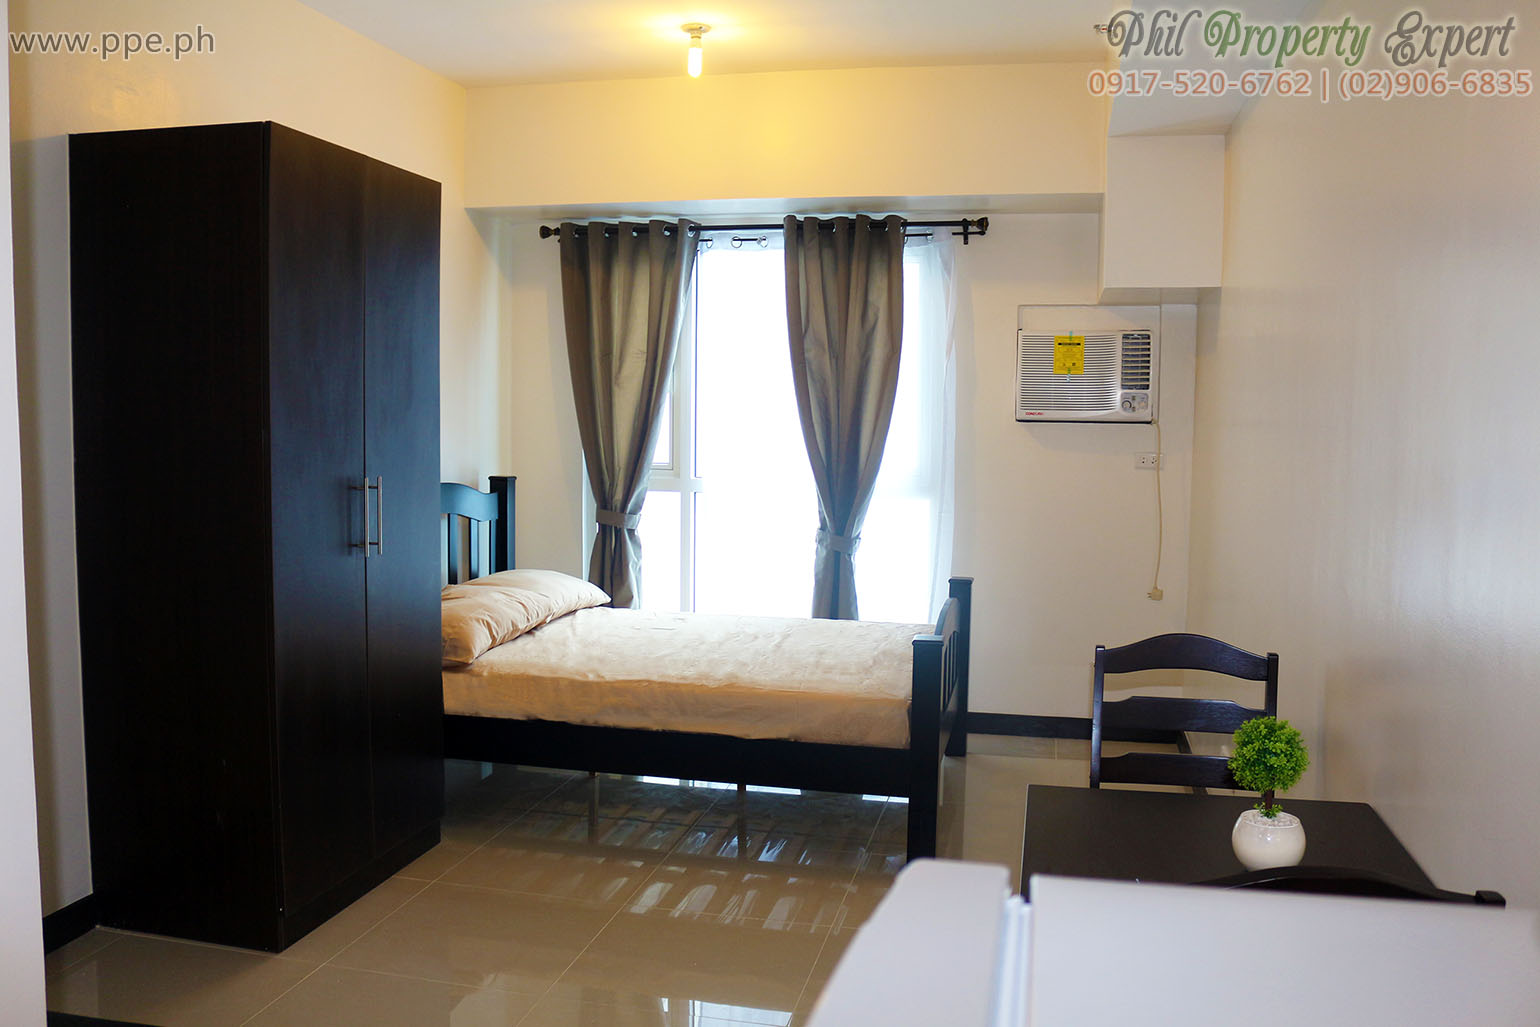 Studio Type Condo For Rent In Pioneer Mandaluyong Axis Residences 15Y